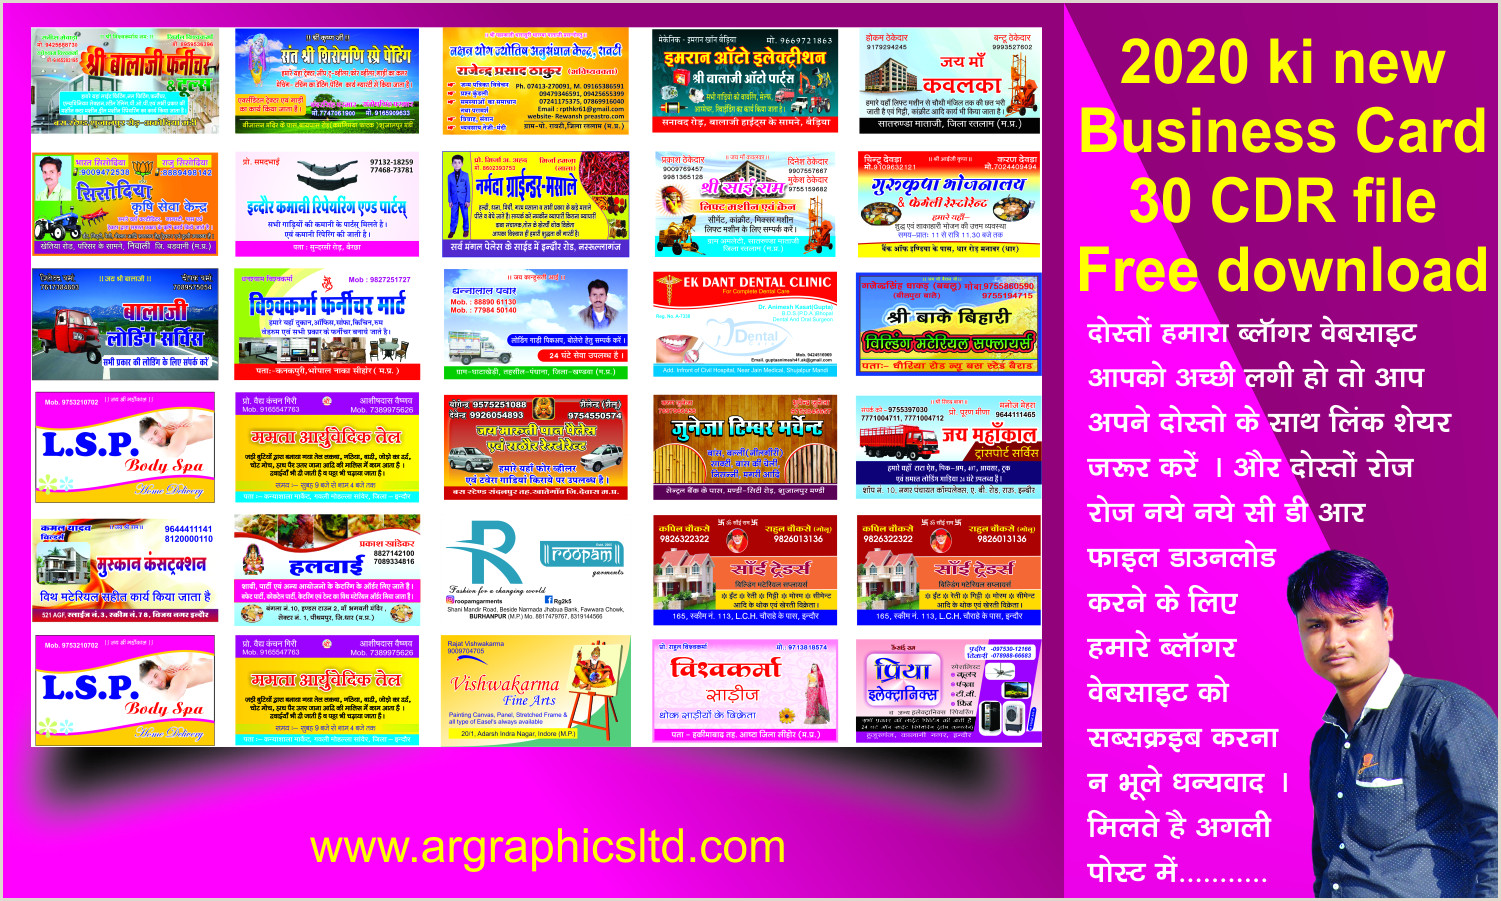 Graphic Design Business Card Ideas Visiting Card Design On Coreldraw Business Card Design On